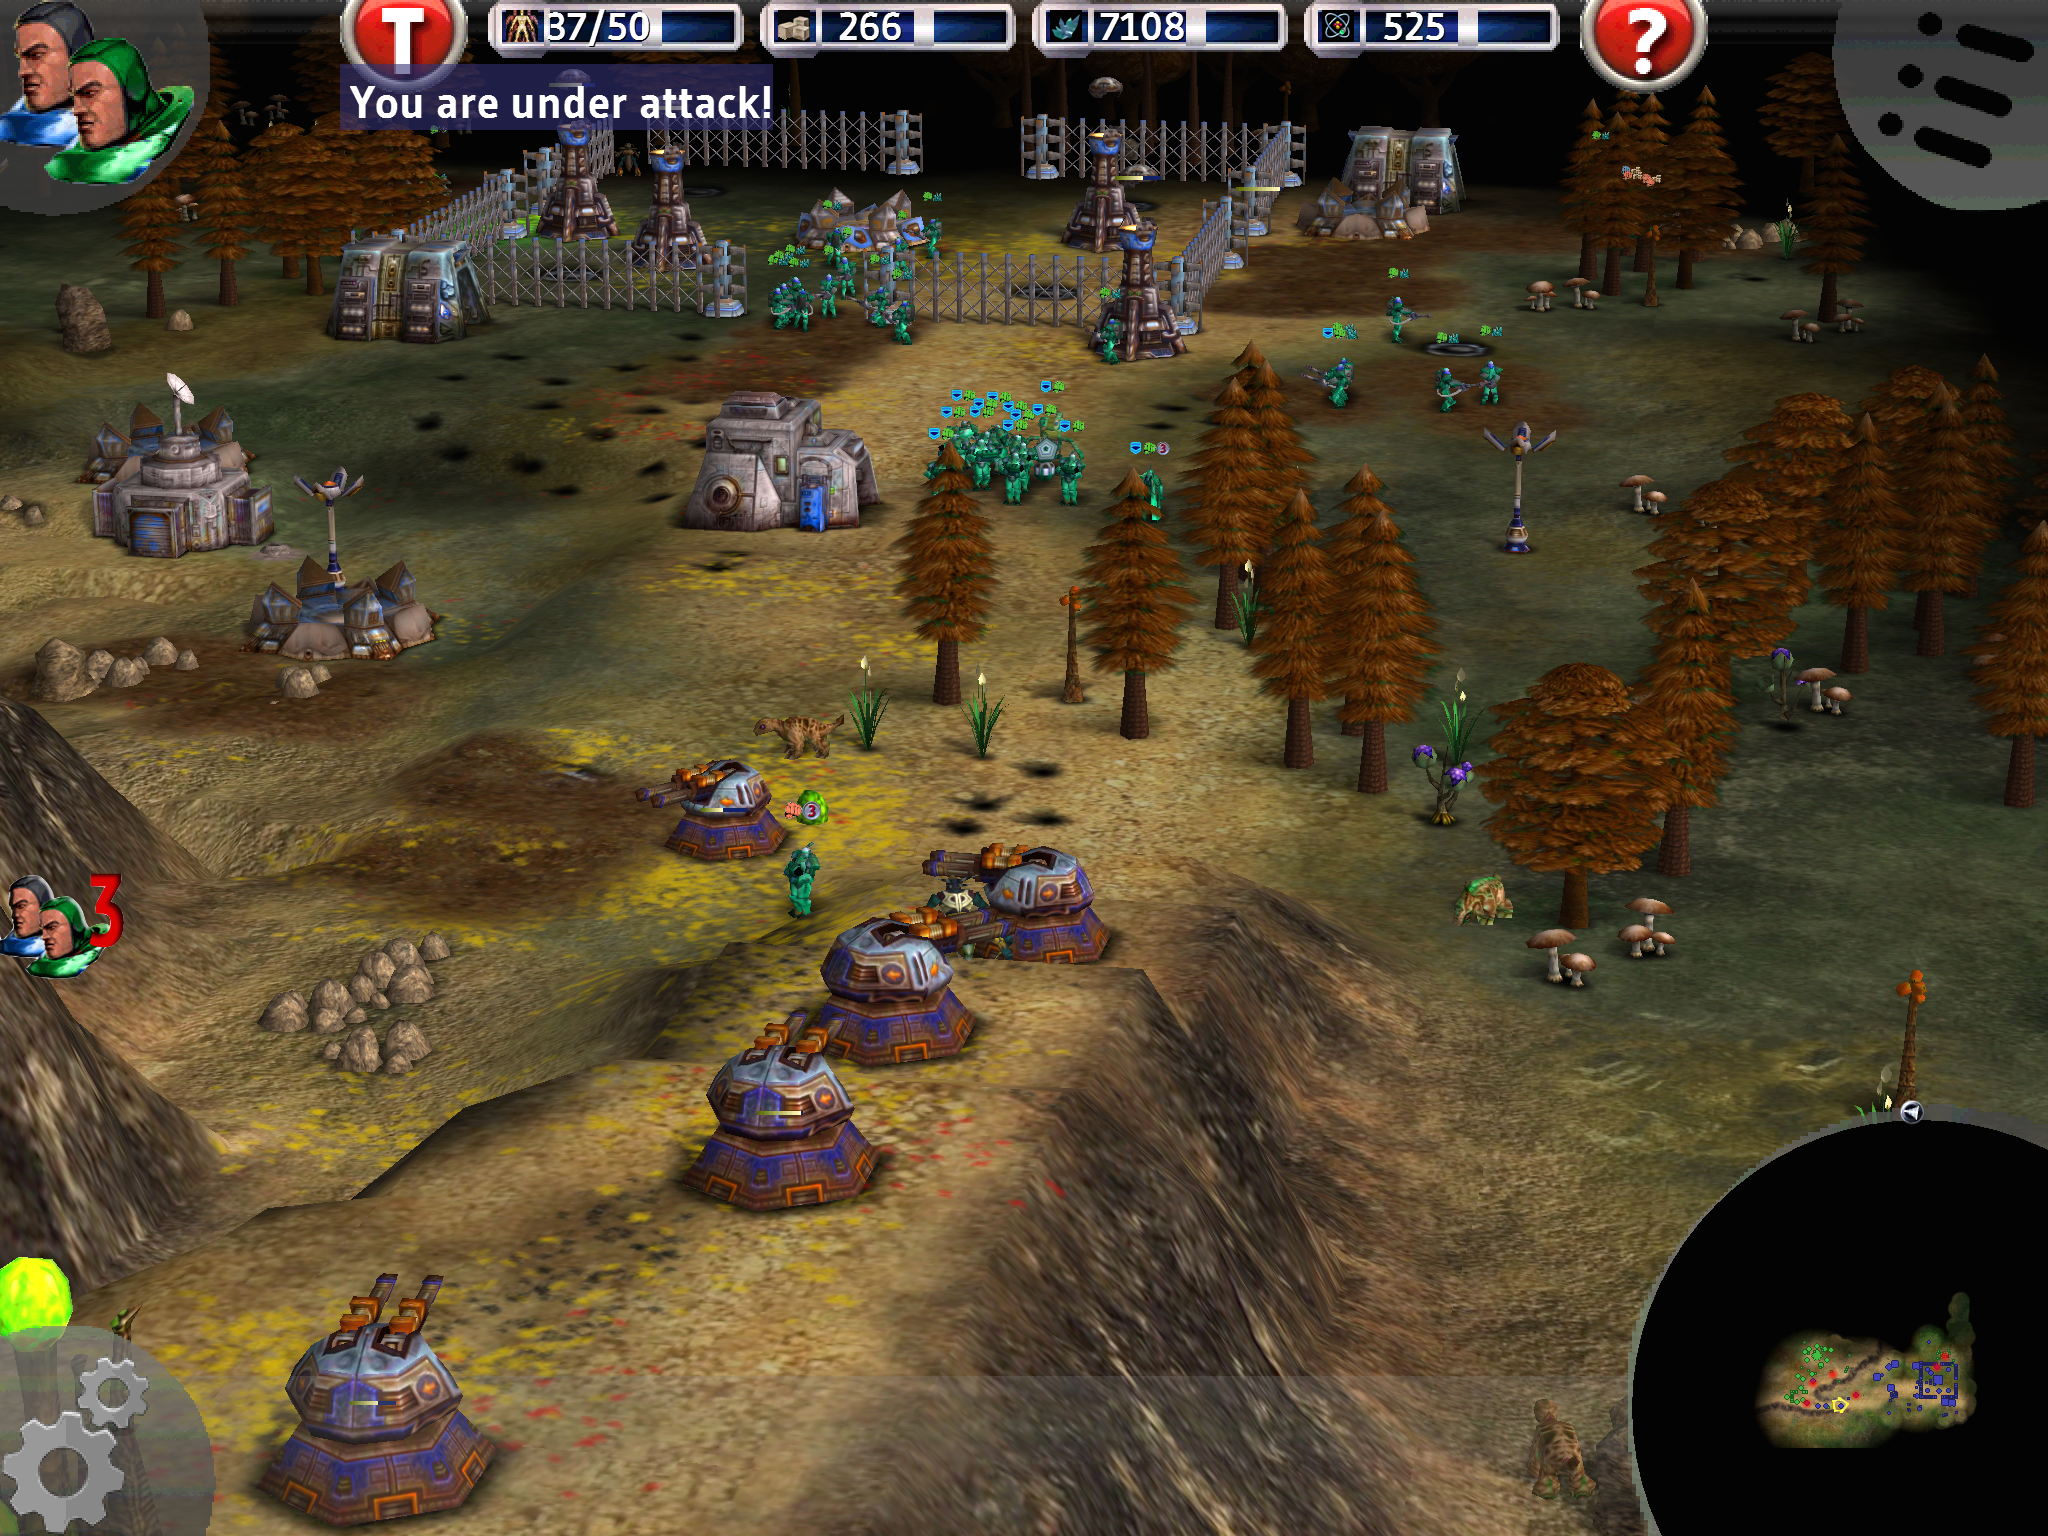 Marine Siege RTS - It's hard to believe this is an RTS game on an iPad!!